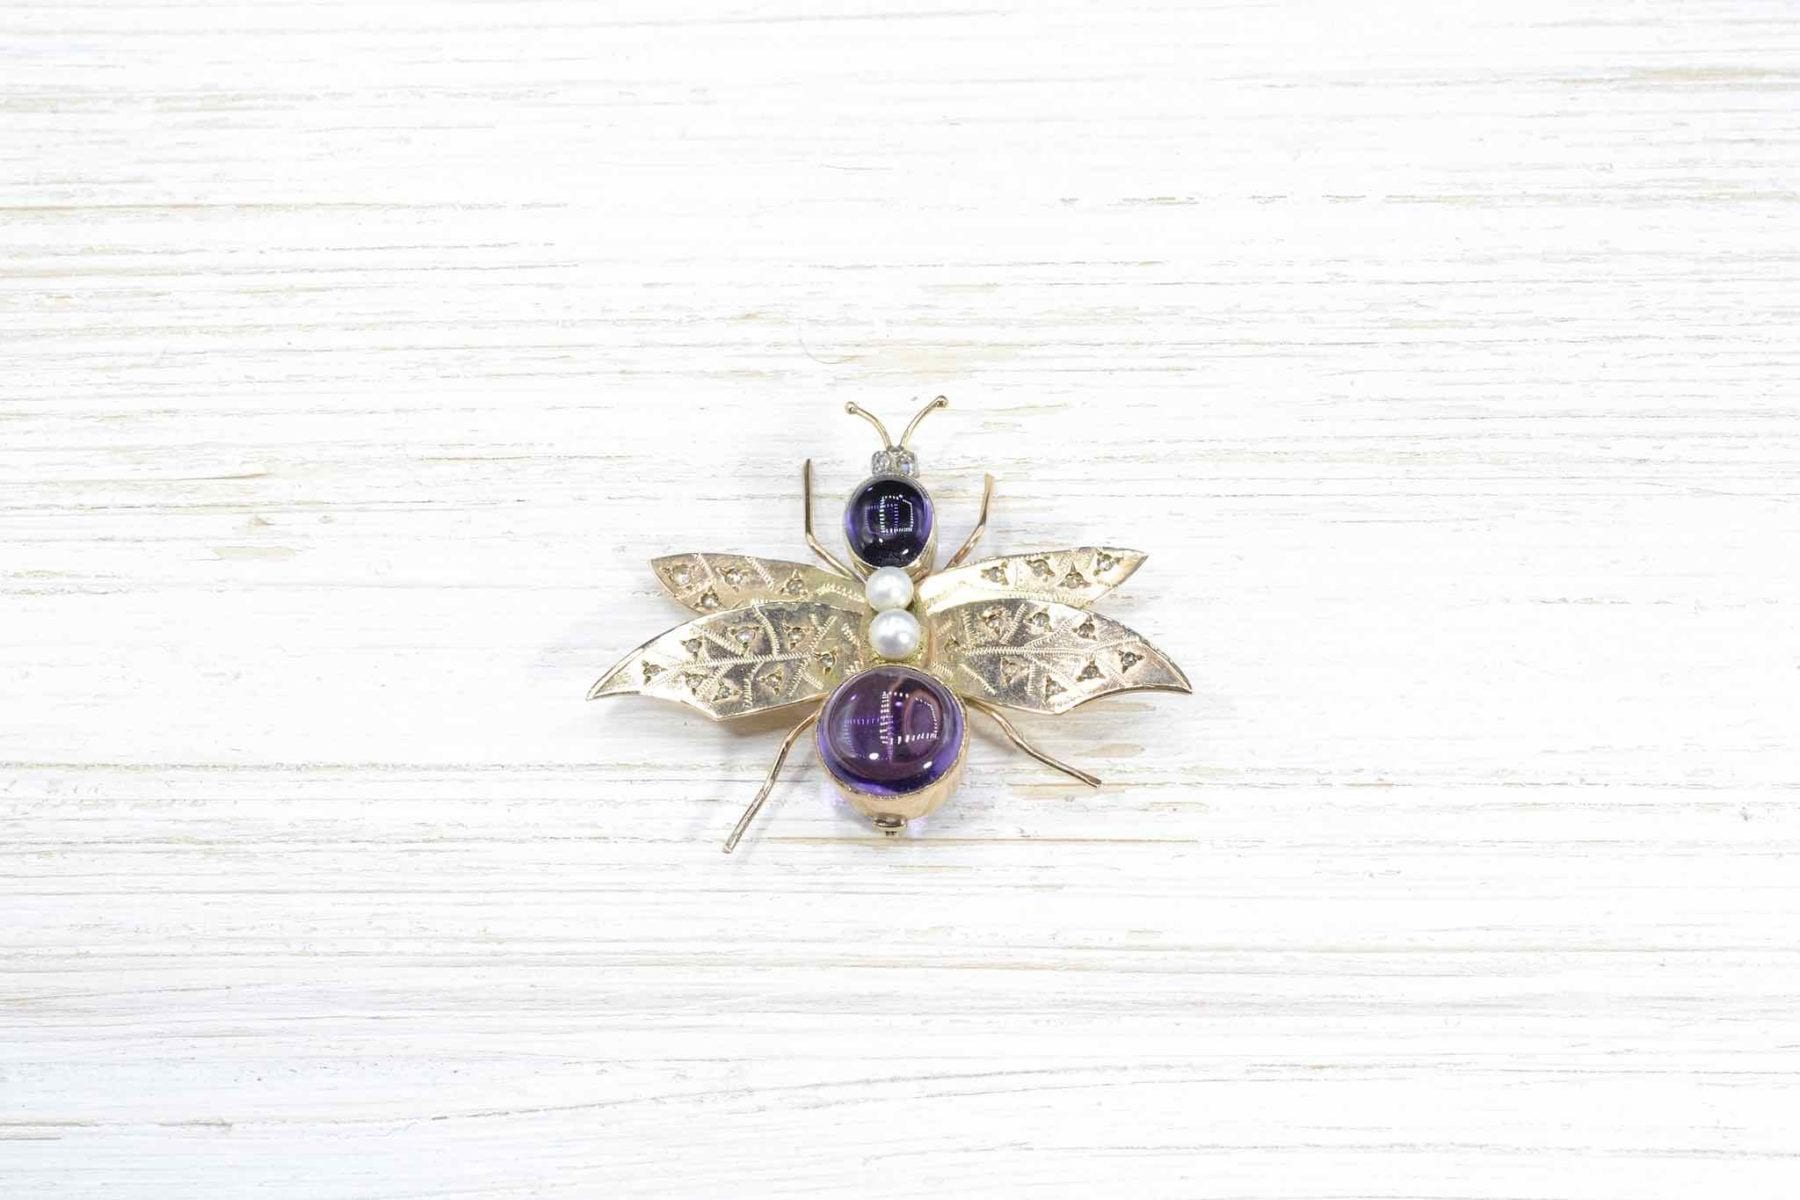 amethyst and pearls brooch